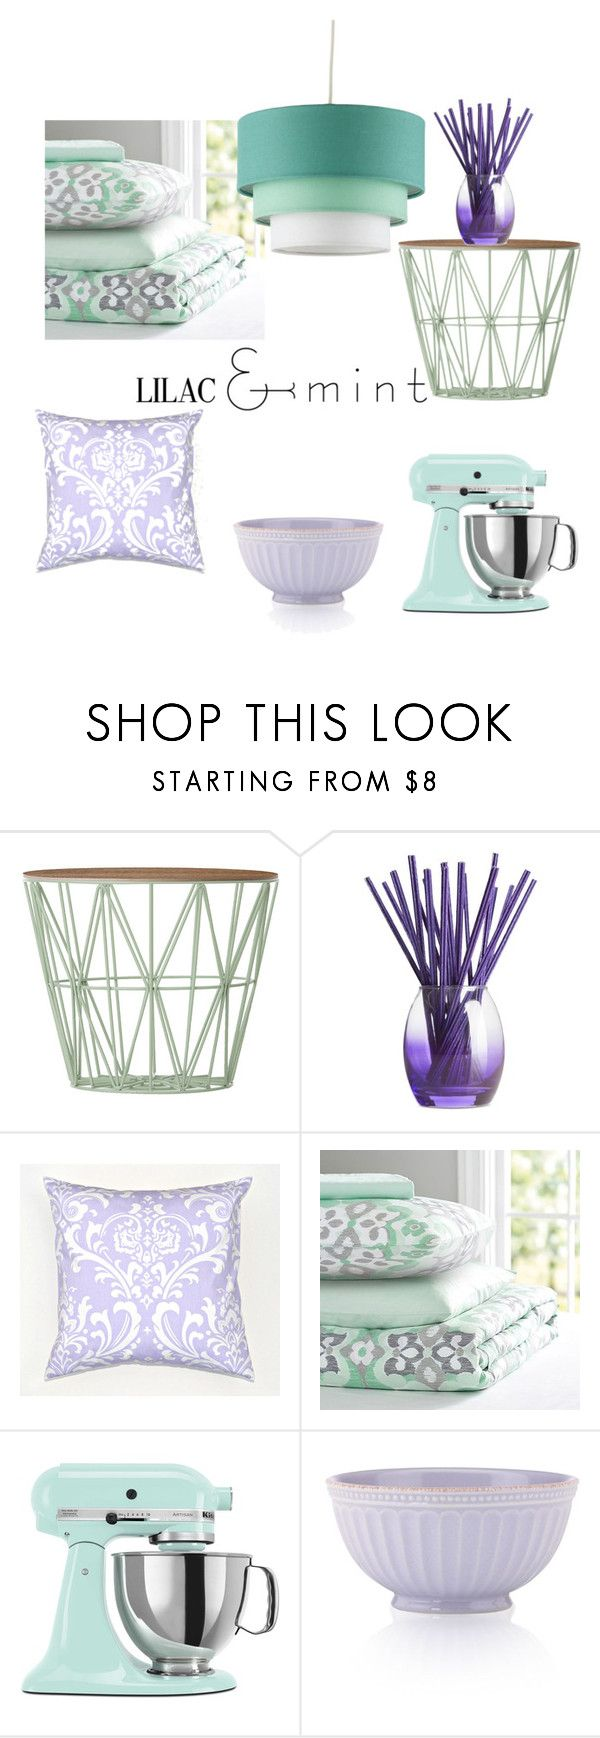 """Lilac and mint"" by fashionbuggirl ❤ liked on Polyvore featuring interior, interiors, interior design, home, home decor, interior decorating, ferm LIVING, Joy Mangano, PBteen and KitchenAid"